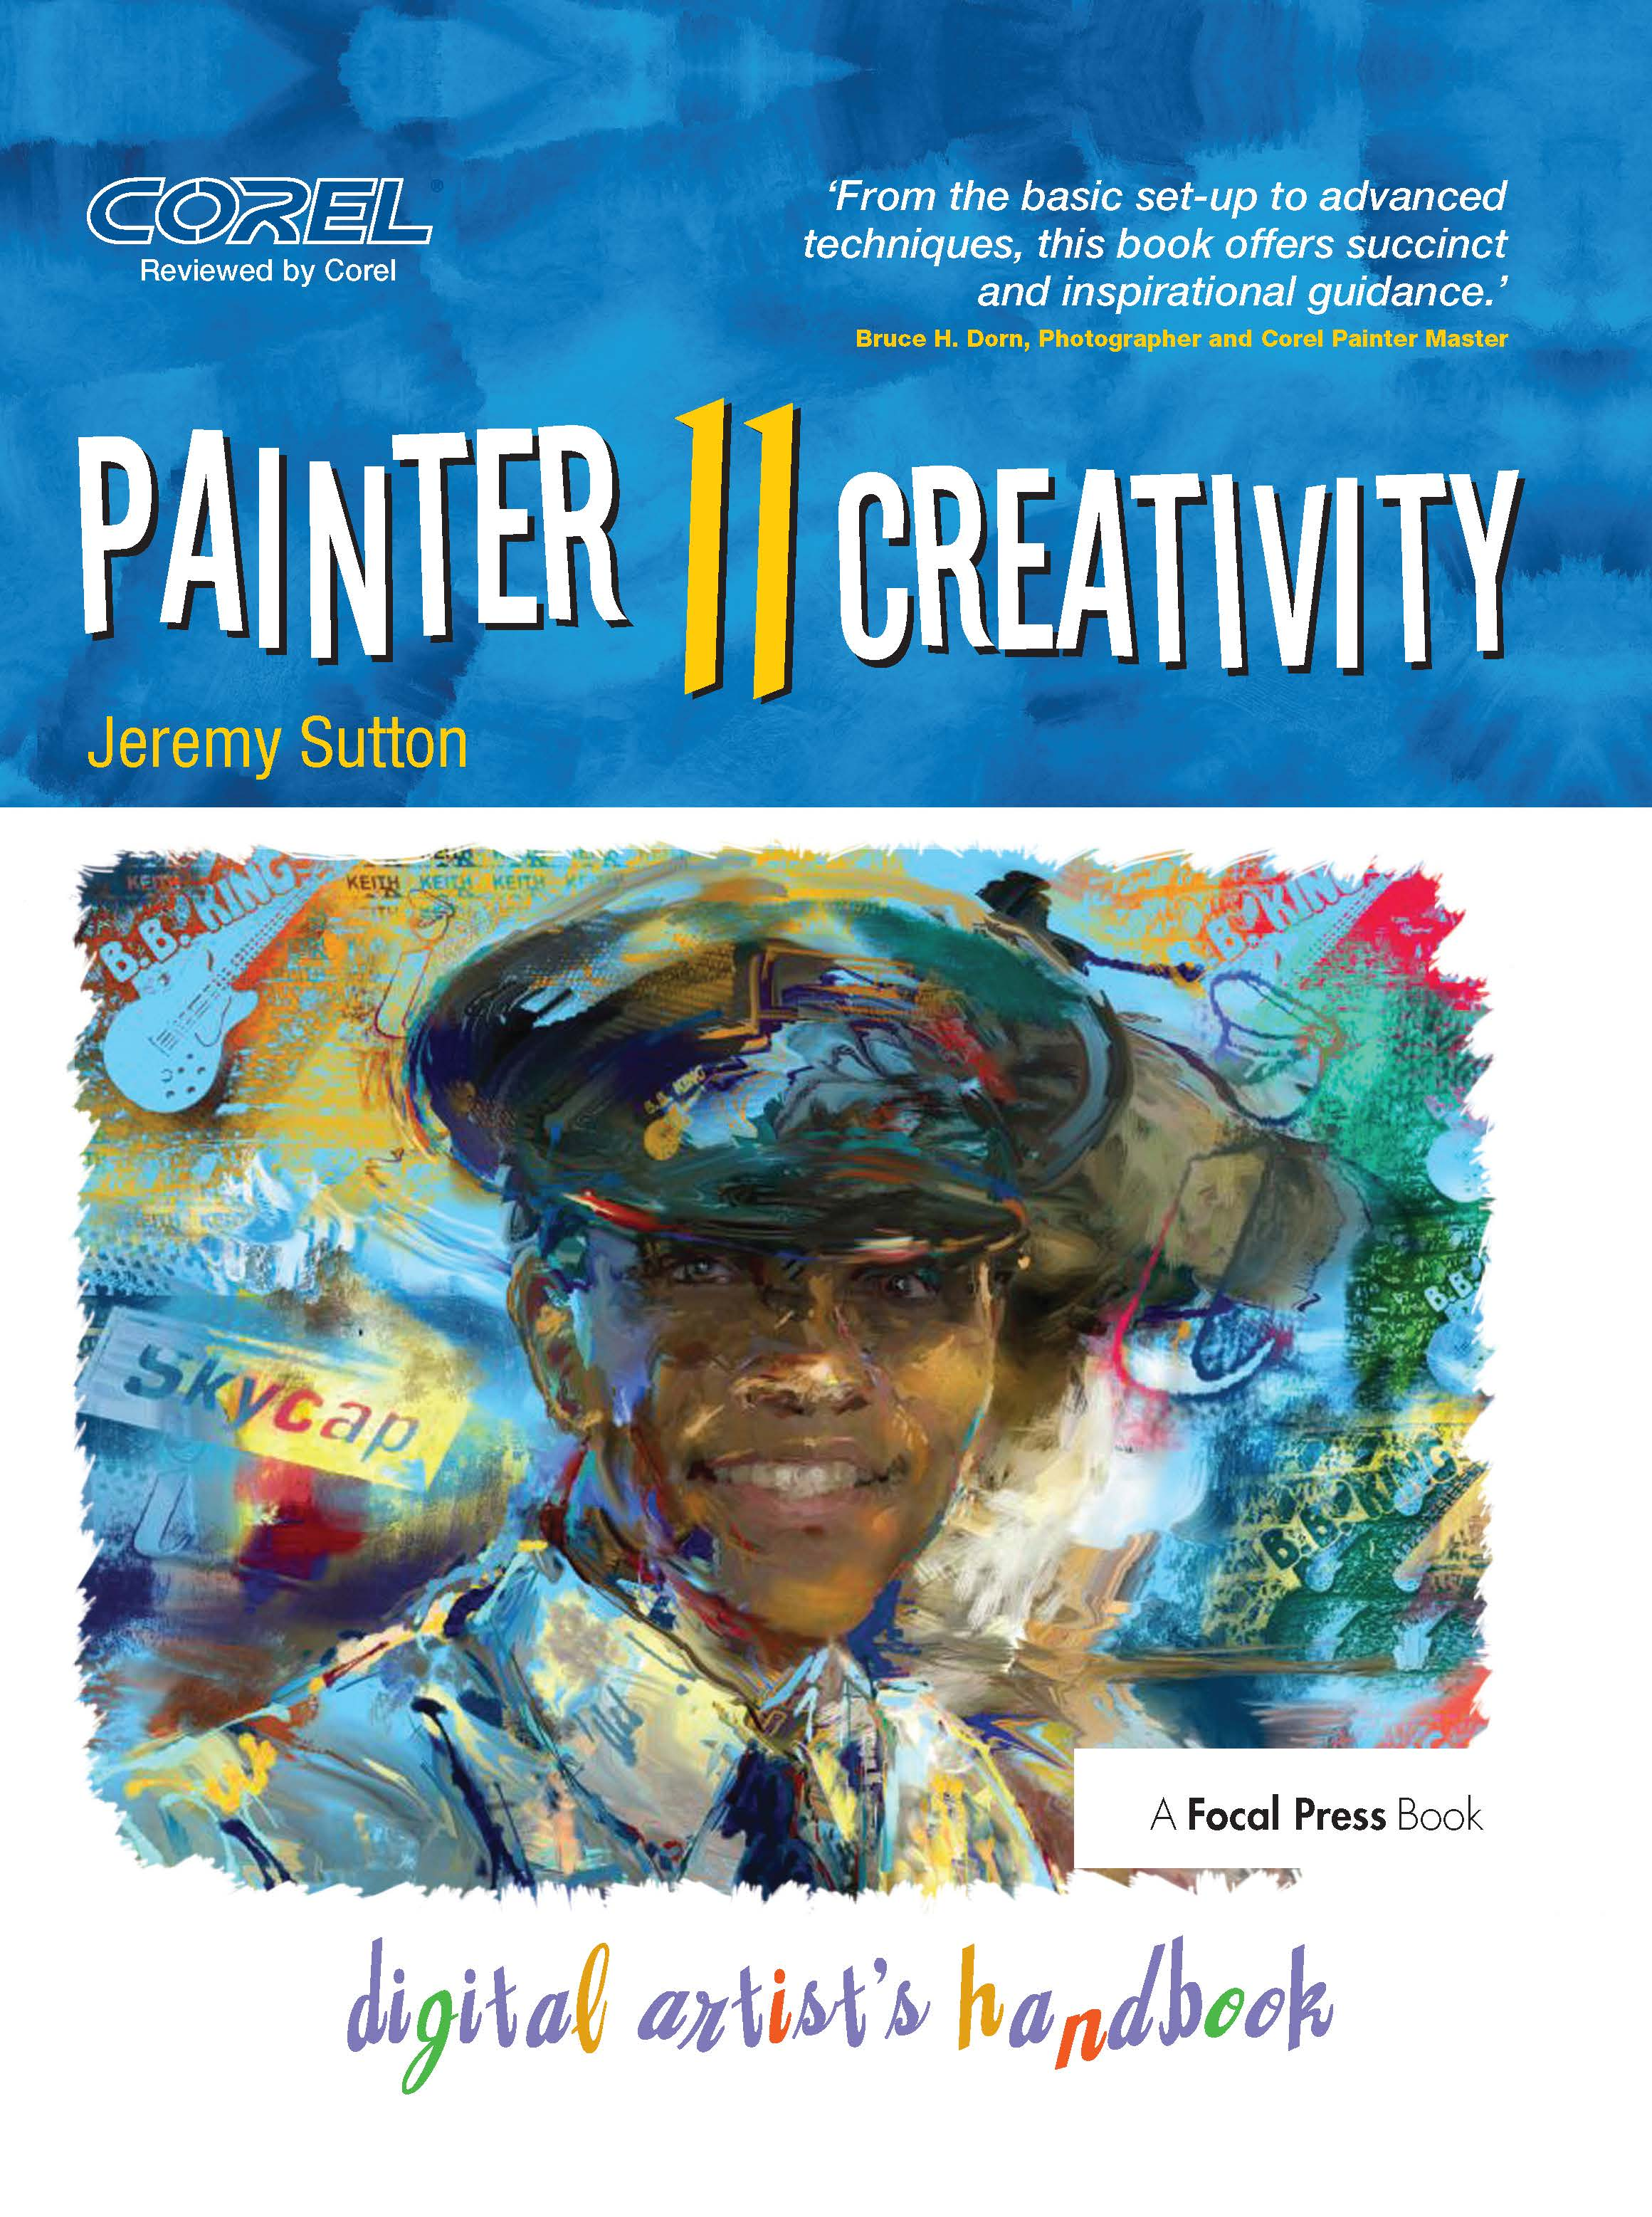 Painter 11 Creativity: Digital Artist's Handbook book cover